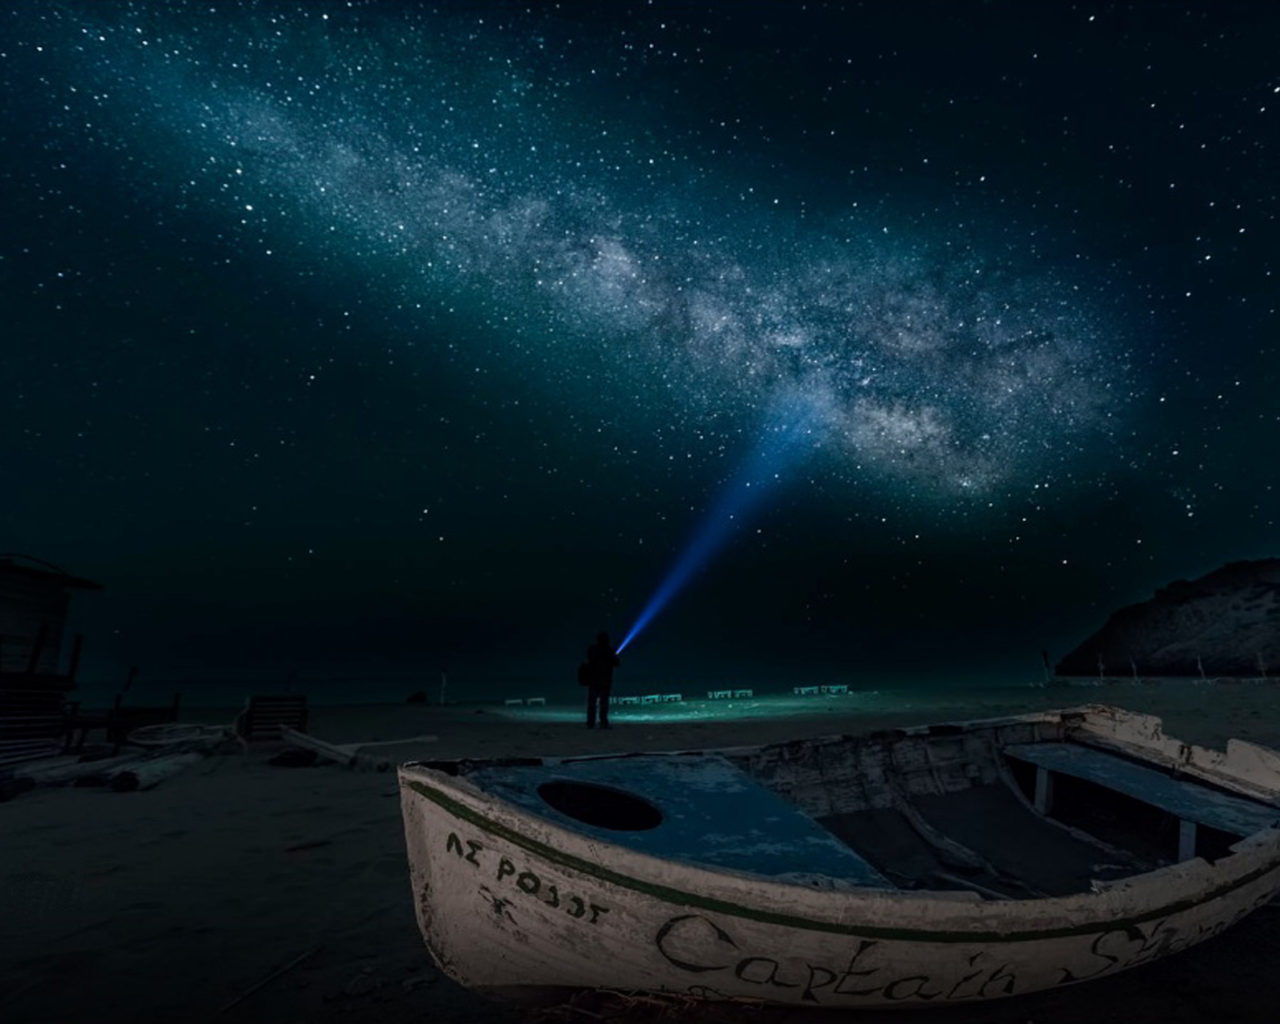 Beautiful 3d Wallpaper For Android Sandy Beach At Night Time Boat Sky Star Digital Art